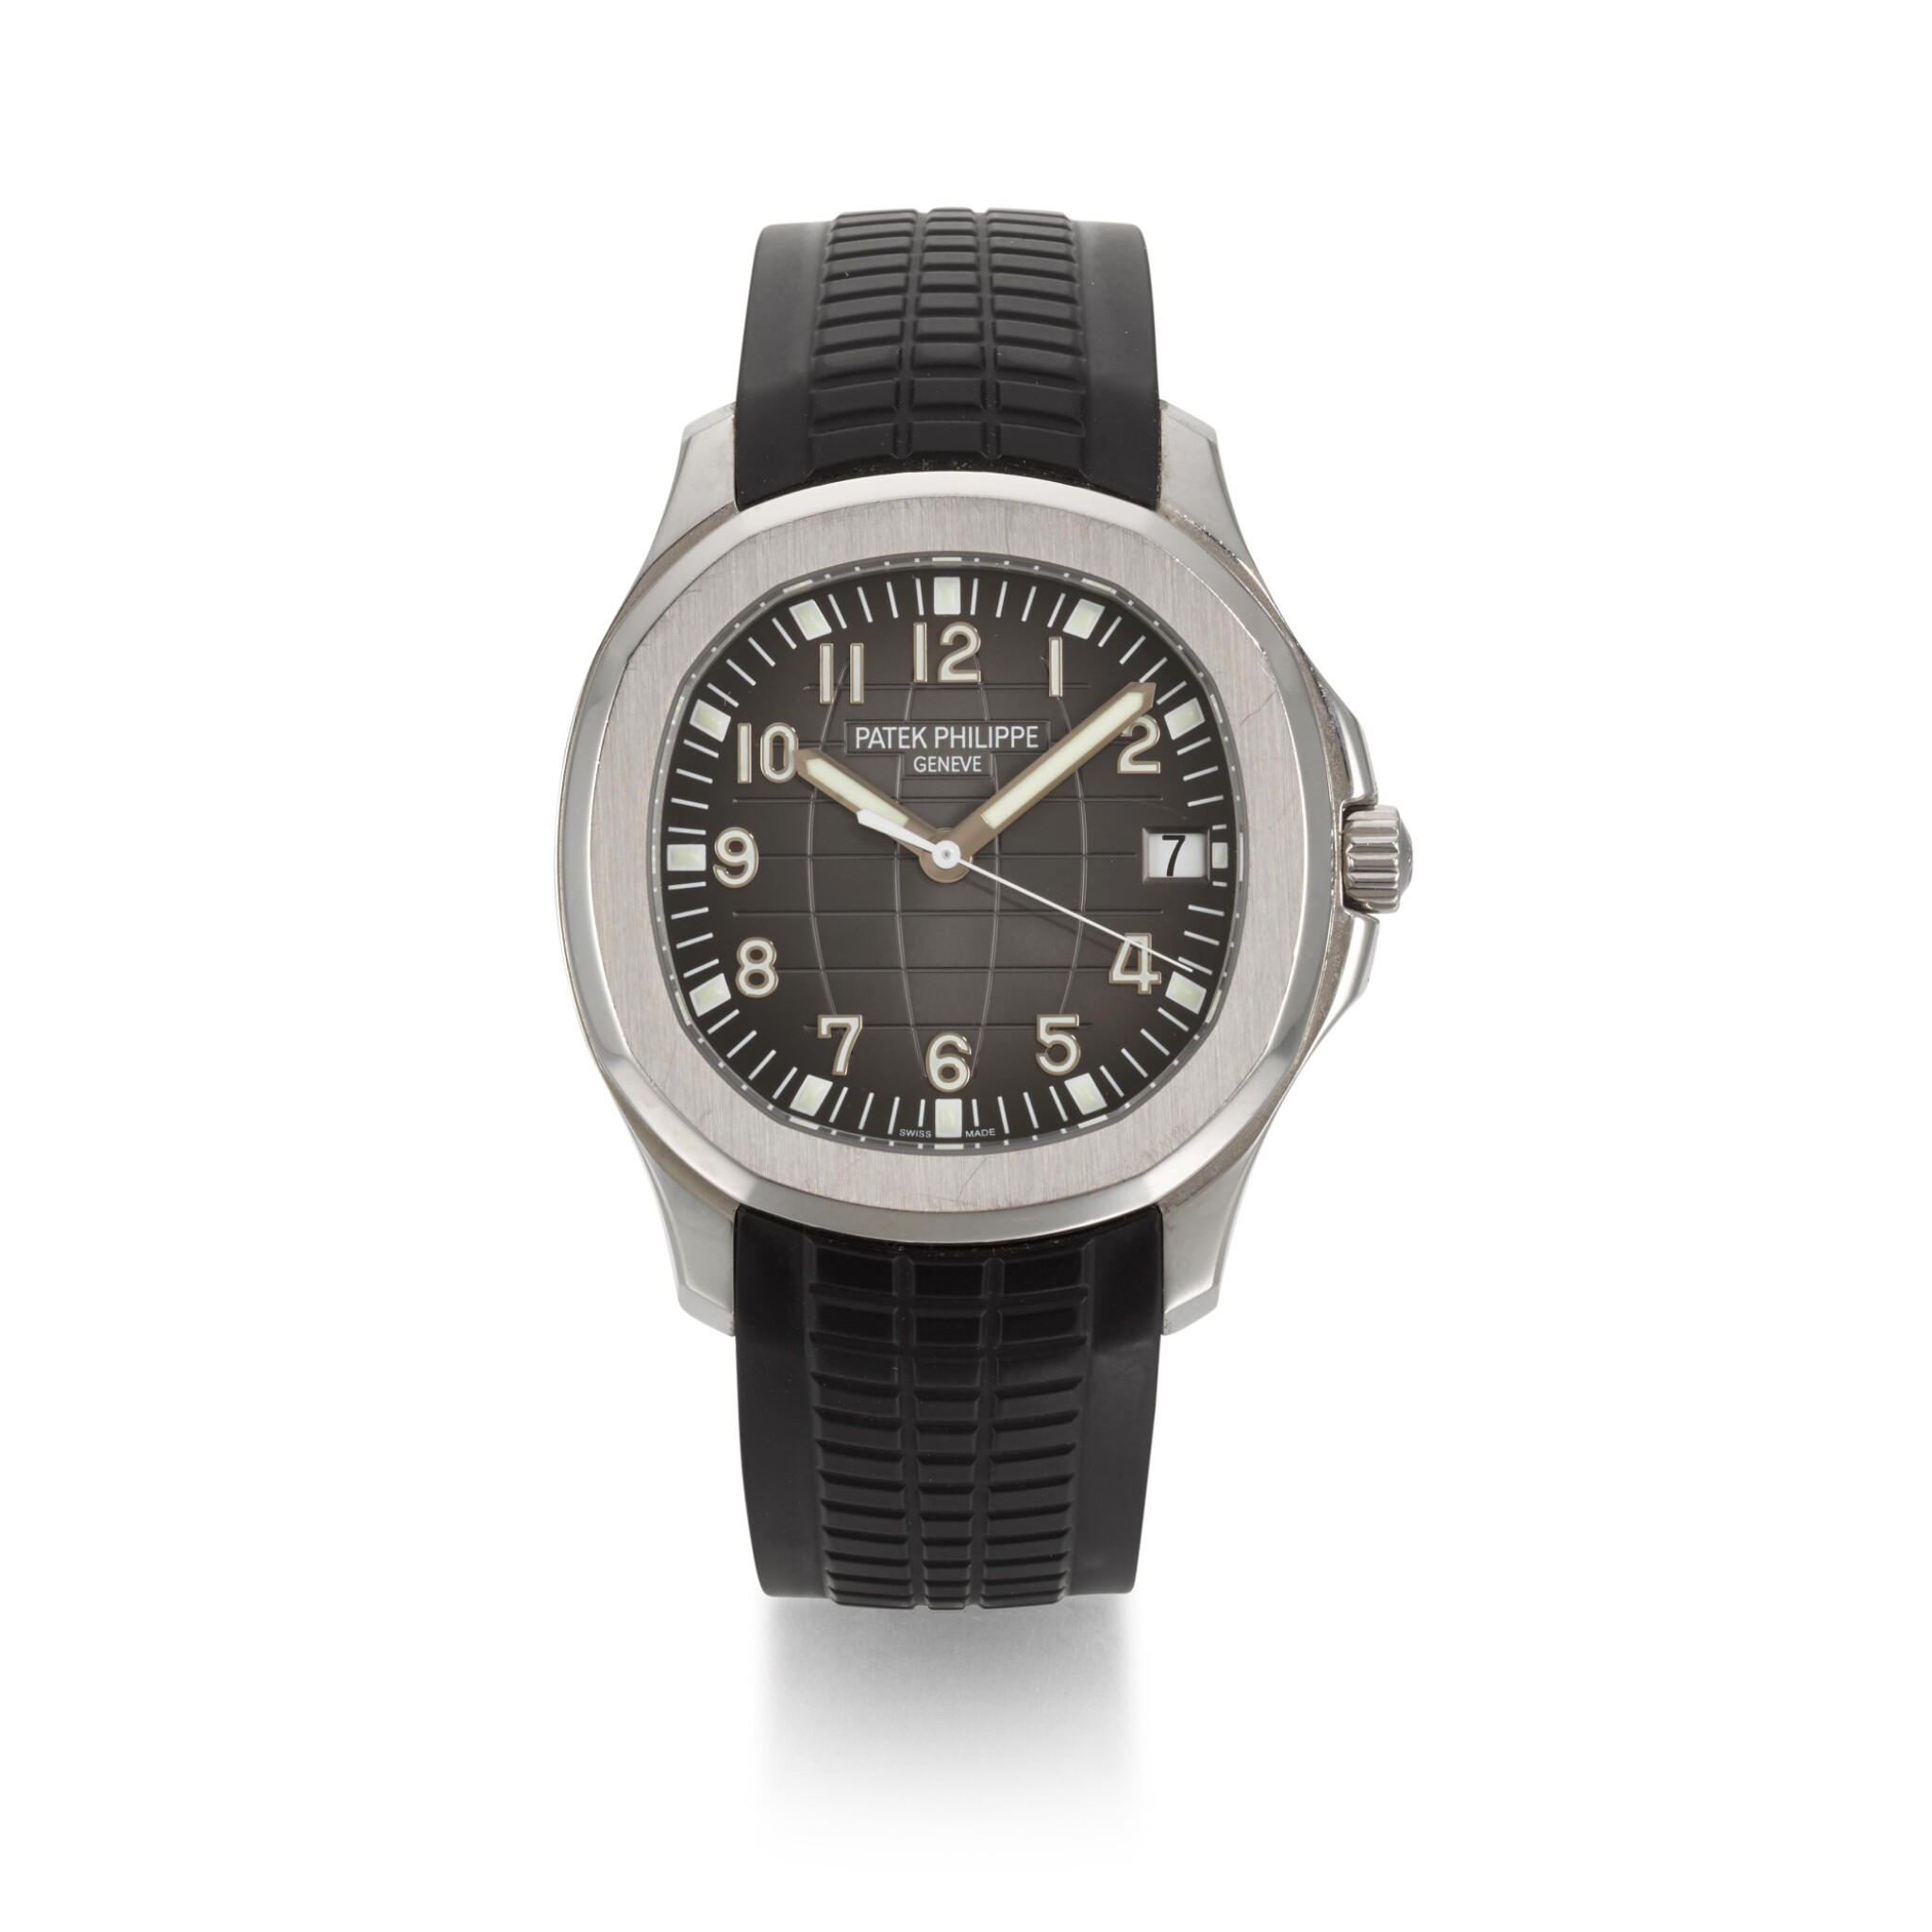 View full screen - View 1 of Lot 349. PATEK PHILIPPE   AQUANAUT REFERENCE 5167A-001, STAINLESS STEEL AUTOMATIC WRISTWATCH WITH DATE, CIRCA 2010.